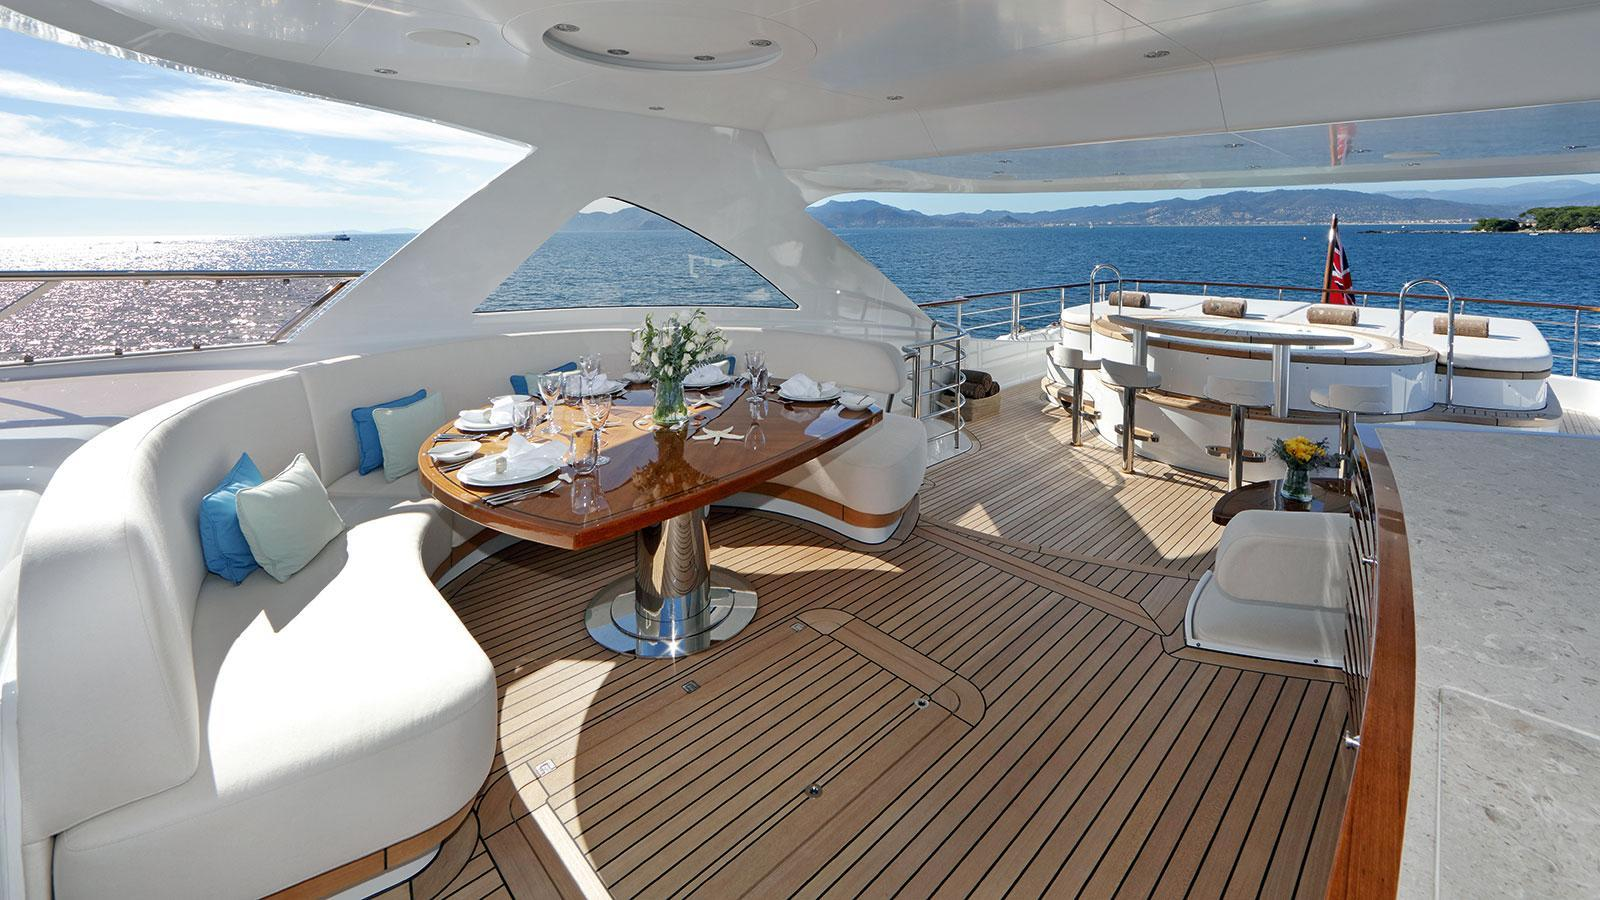 solis-motor-yacht-mulder-2015-34m-covered-deck